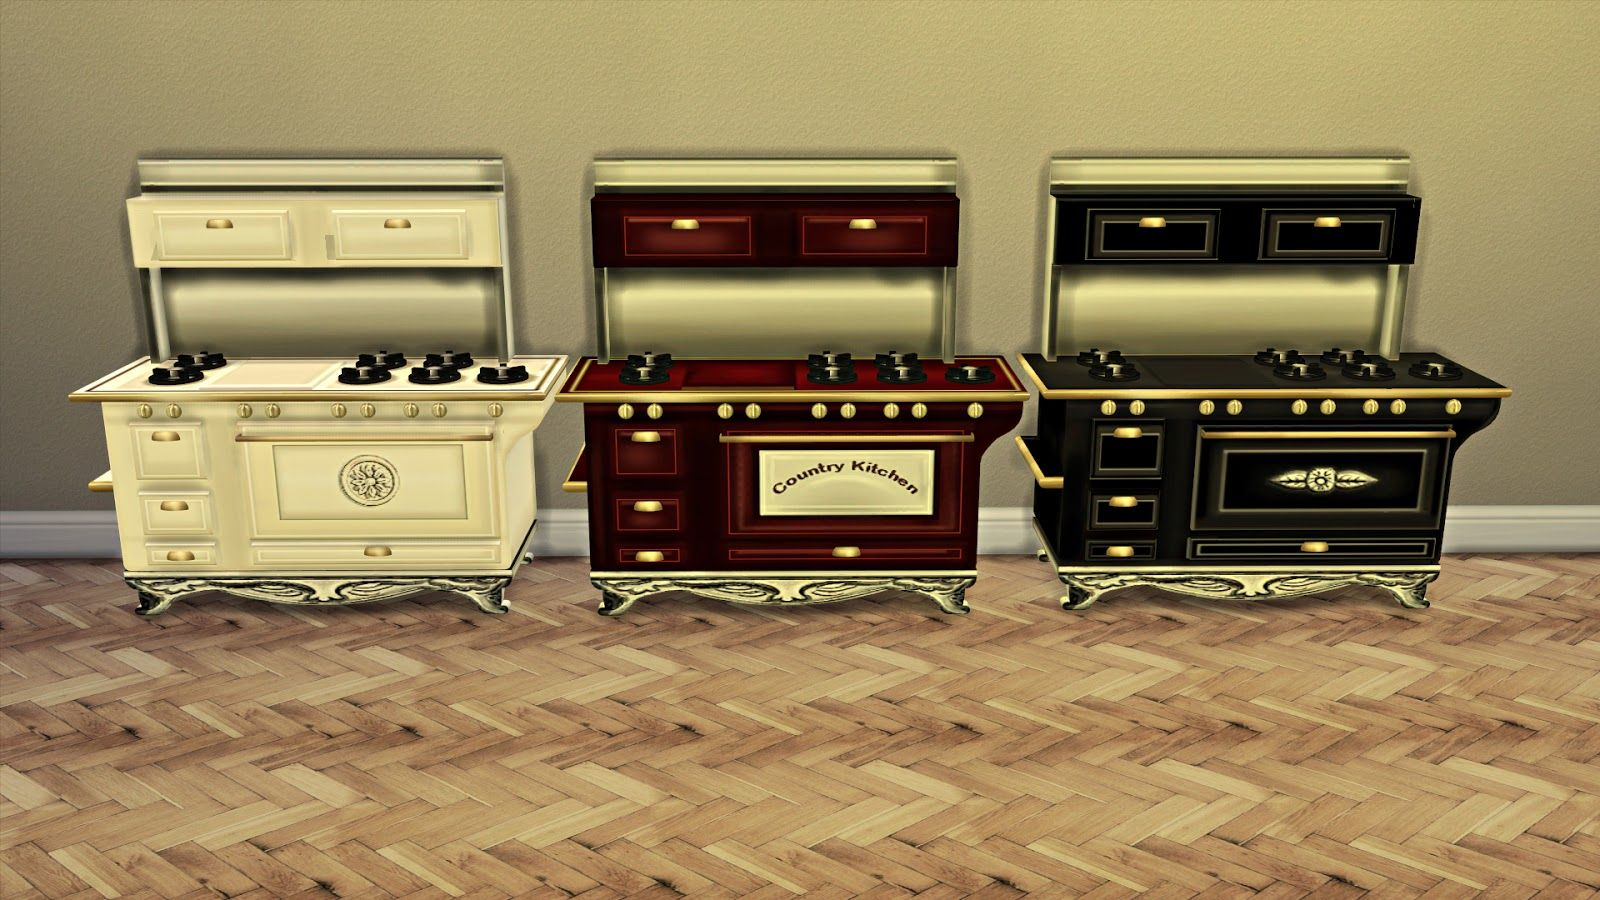 Sims 4 Küche Rund Cc For Sims 4 Country Stove Sims 4 Stuff Pinterest